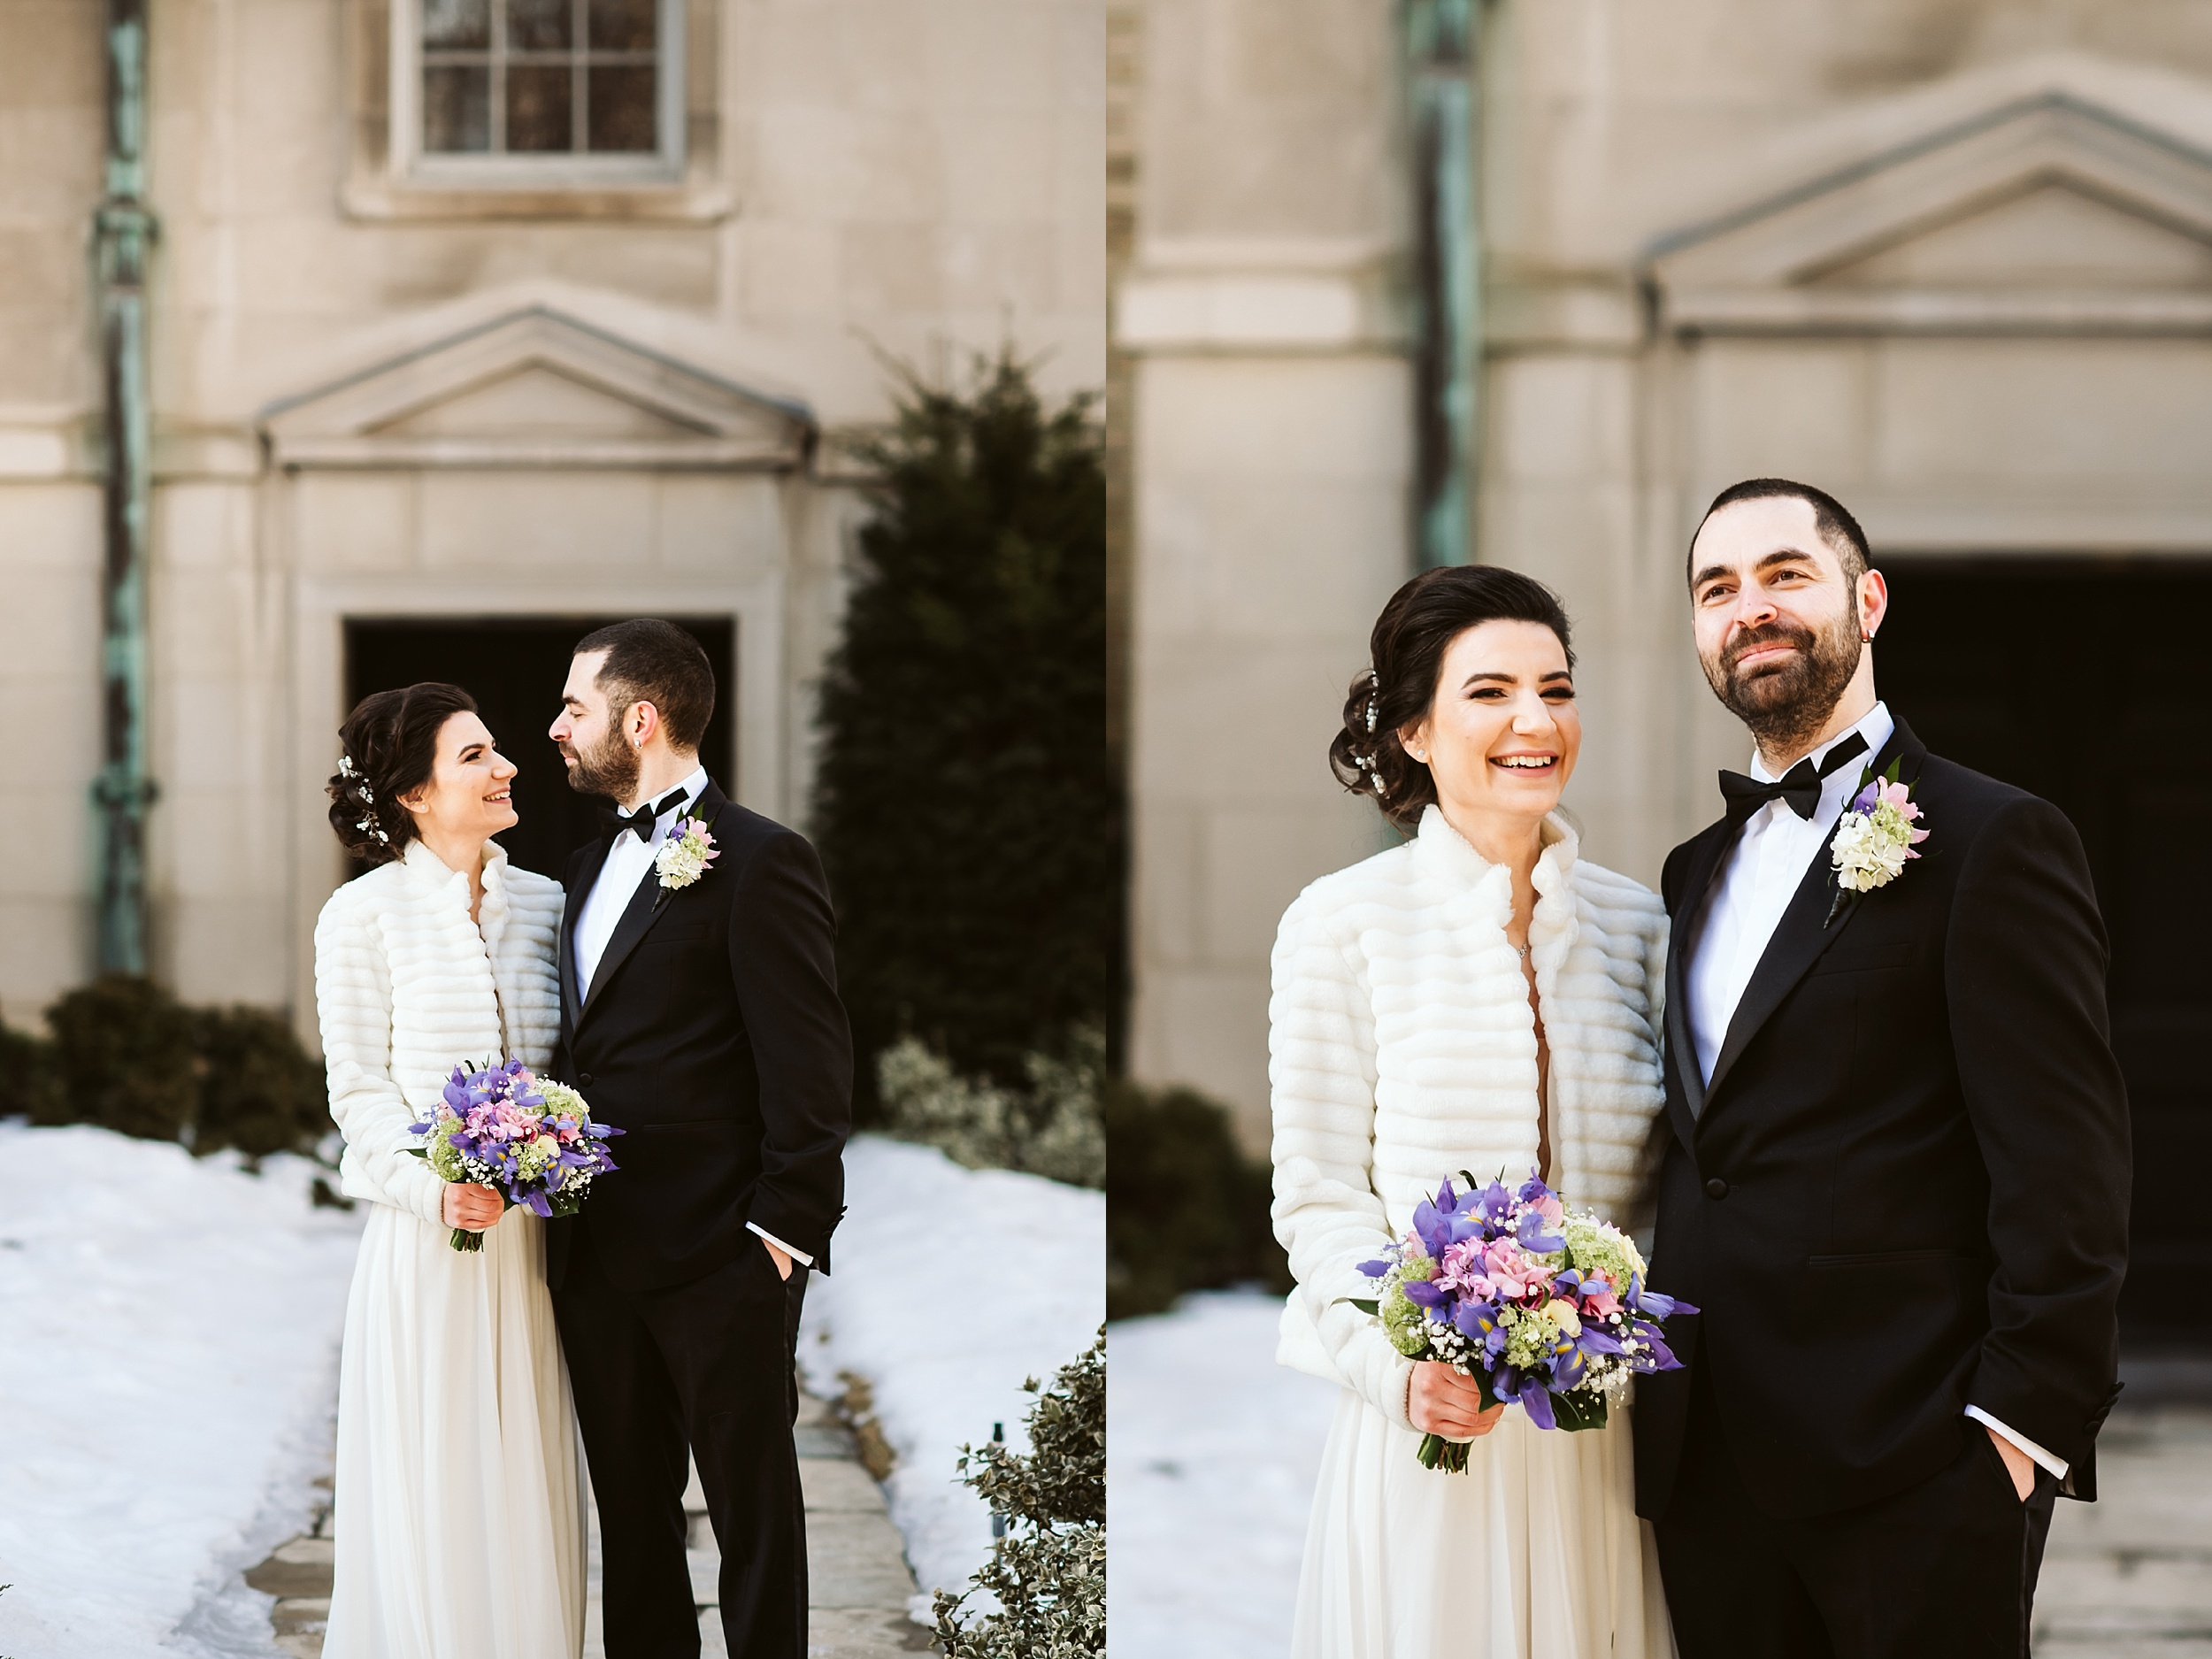 Toronto_City_Hall_Elopement_Wedding_Photographer011.jpg